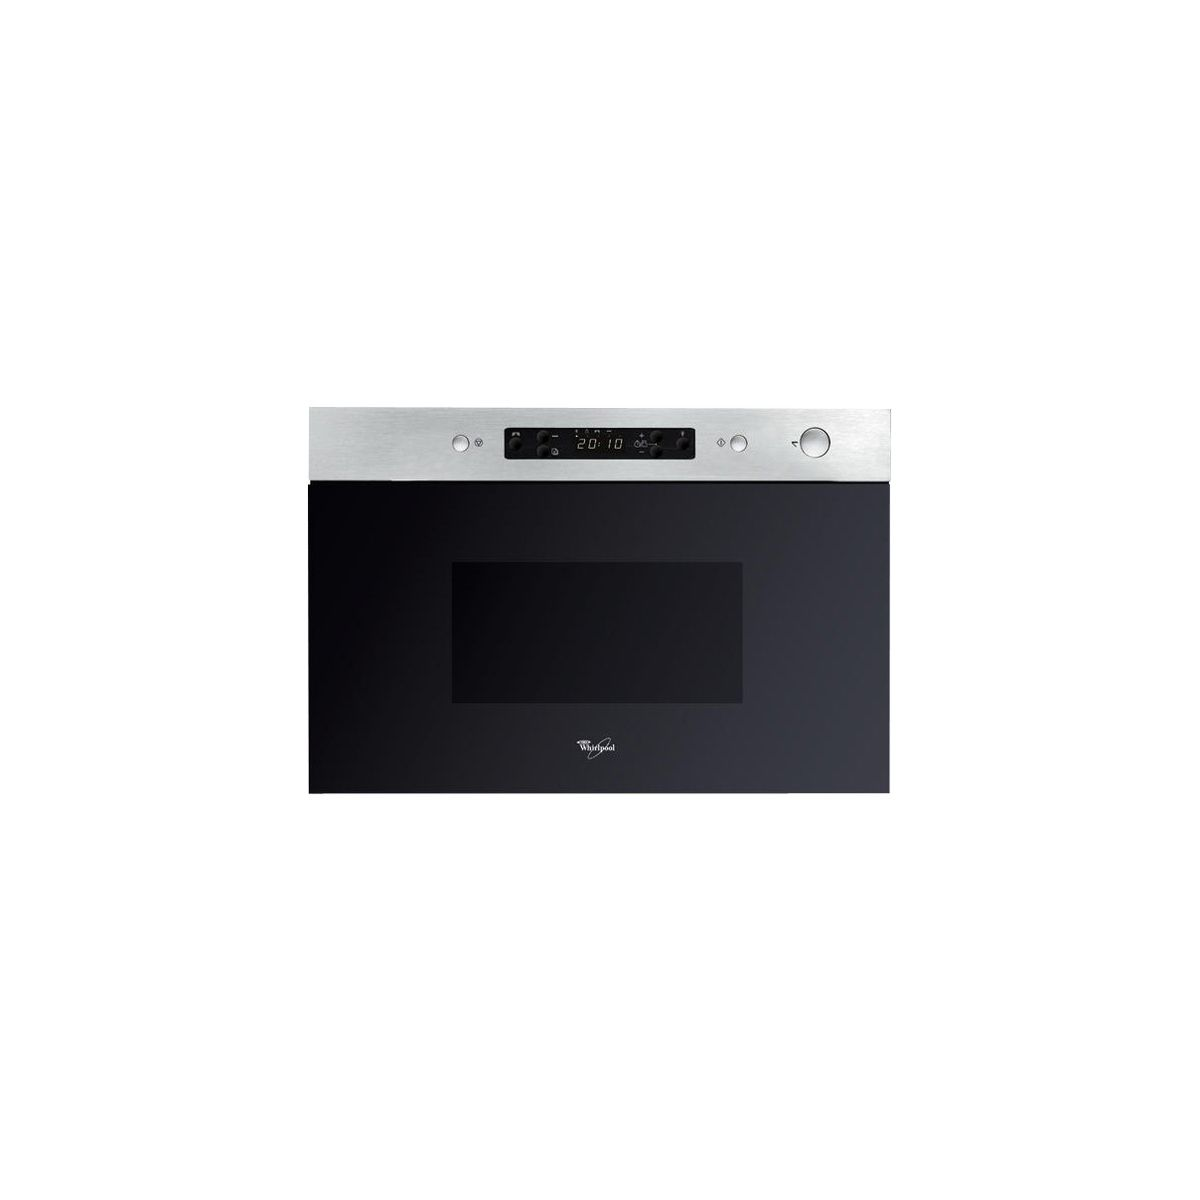 Micro ondes gril WHIRLPOOL AMW 492 IX